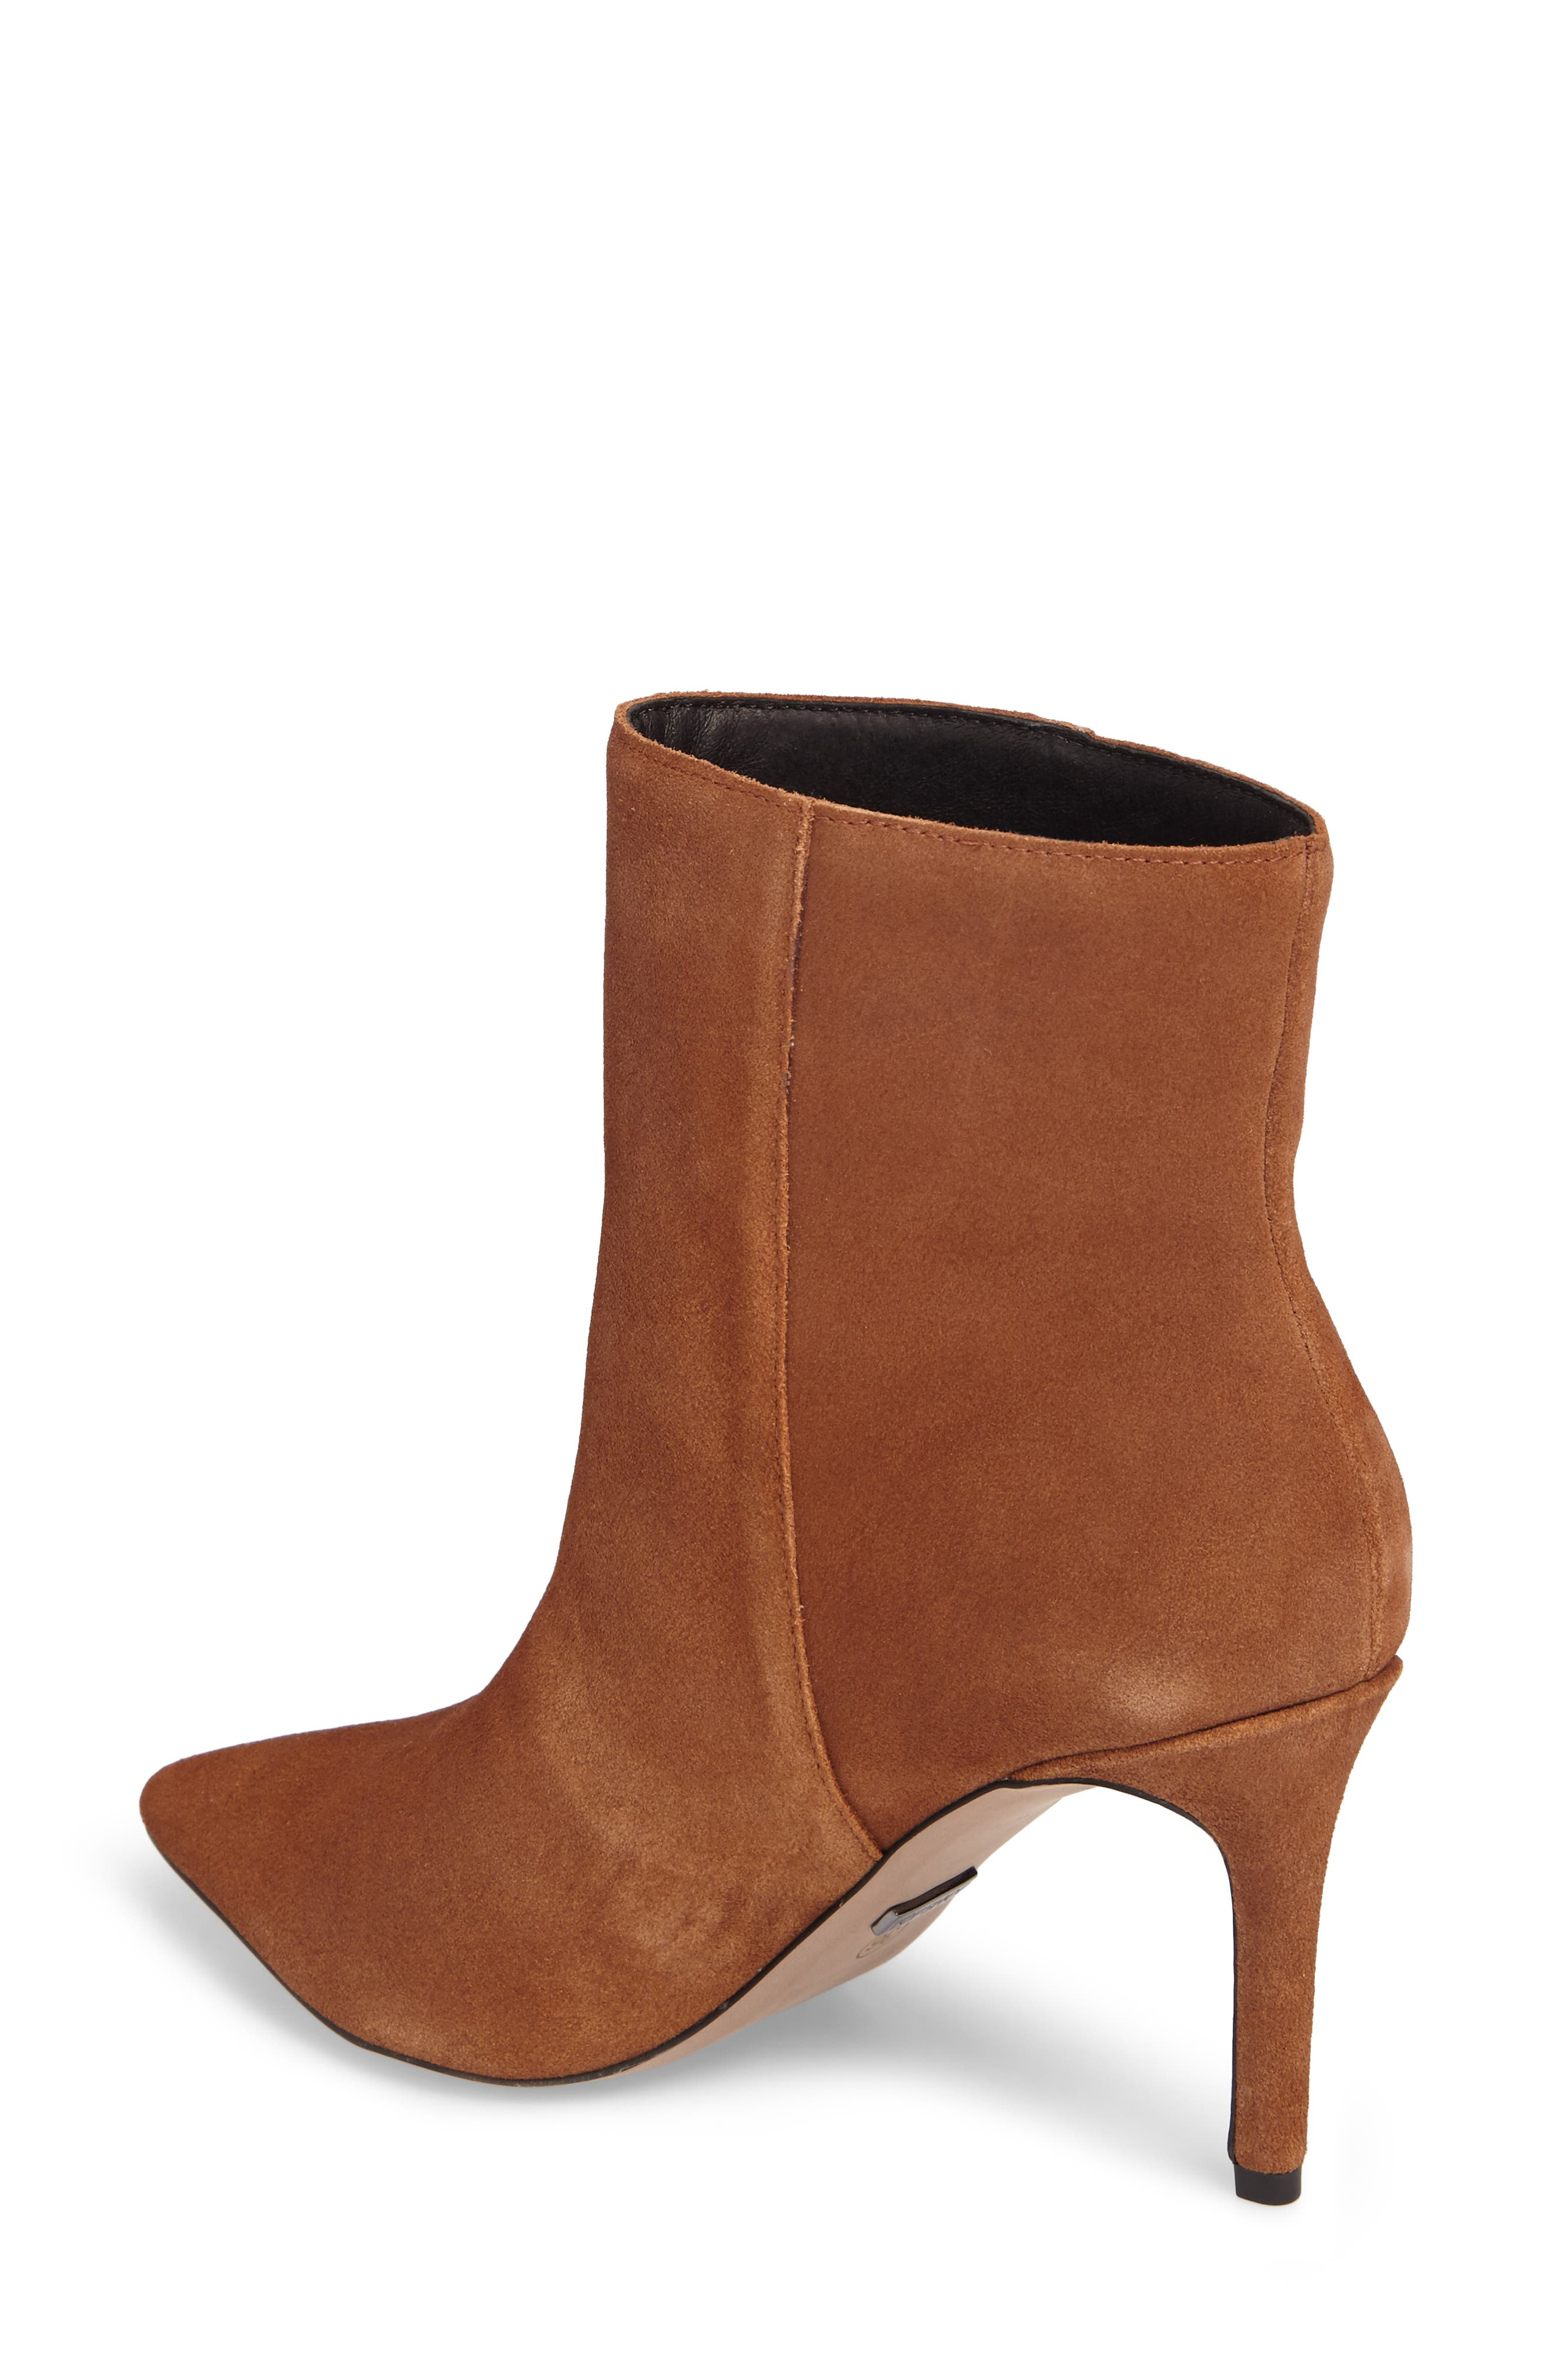 Holiday Stiletto Bootie,                             Alternate thumbnail 4, color,